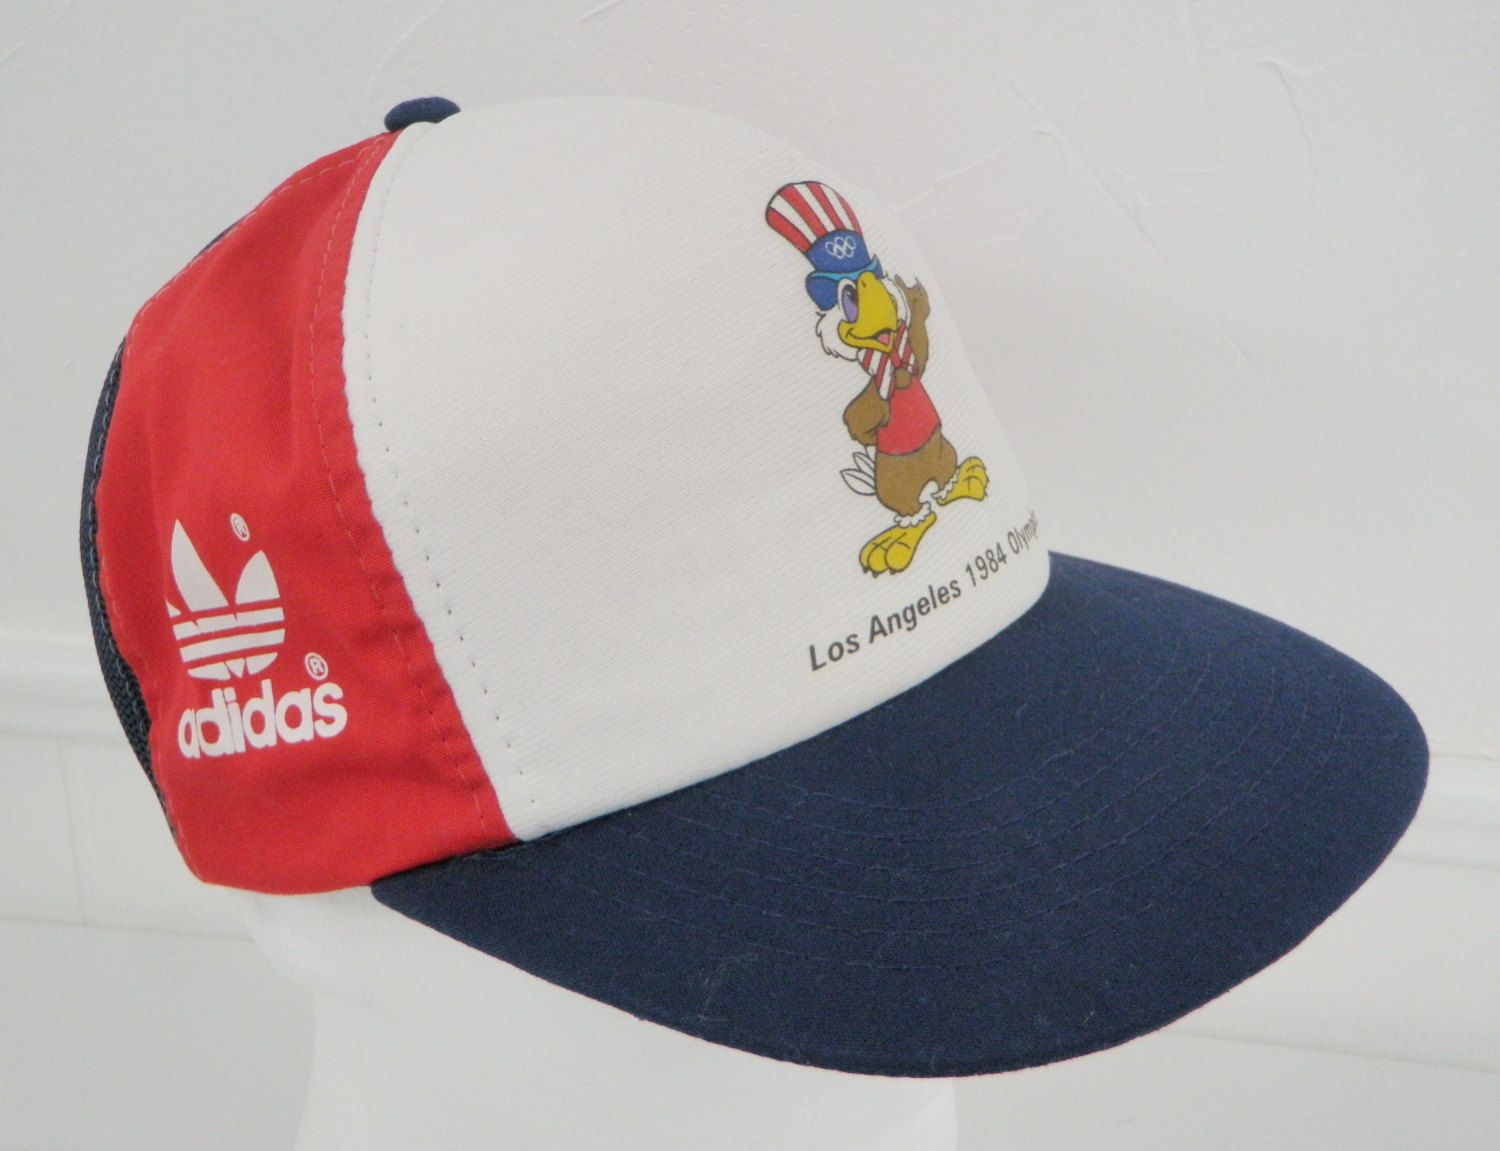 f1e88bbdebd Adidas Snapback Trucker Hat 1984 US Olympics Los Angeles Patriotic Eagle  Red White Blue Mesh Foam by TraSheeWomen on Etsy